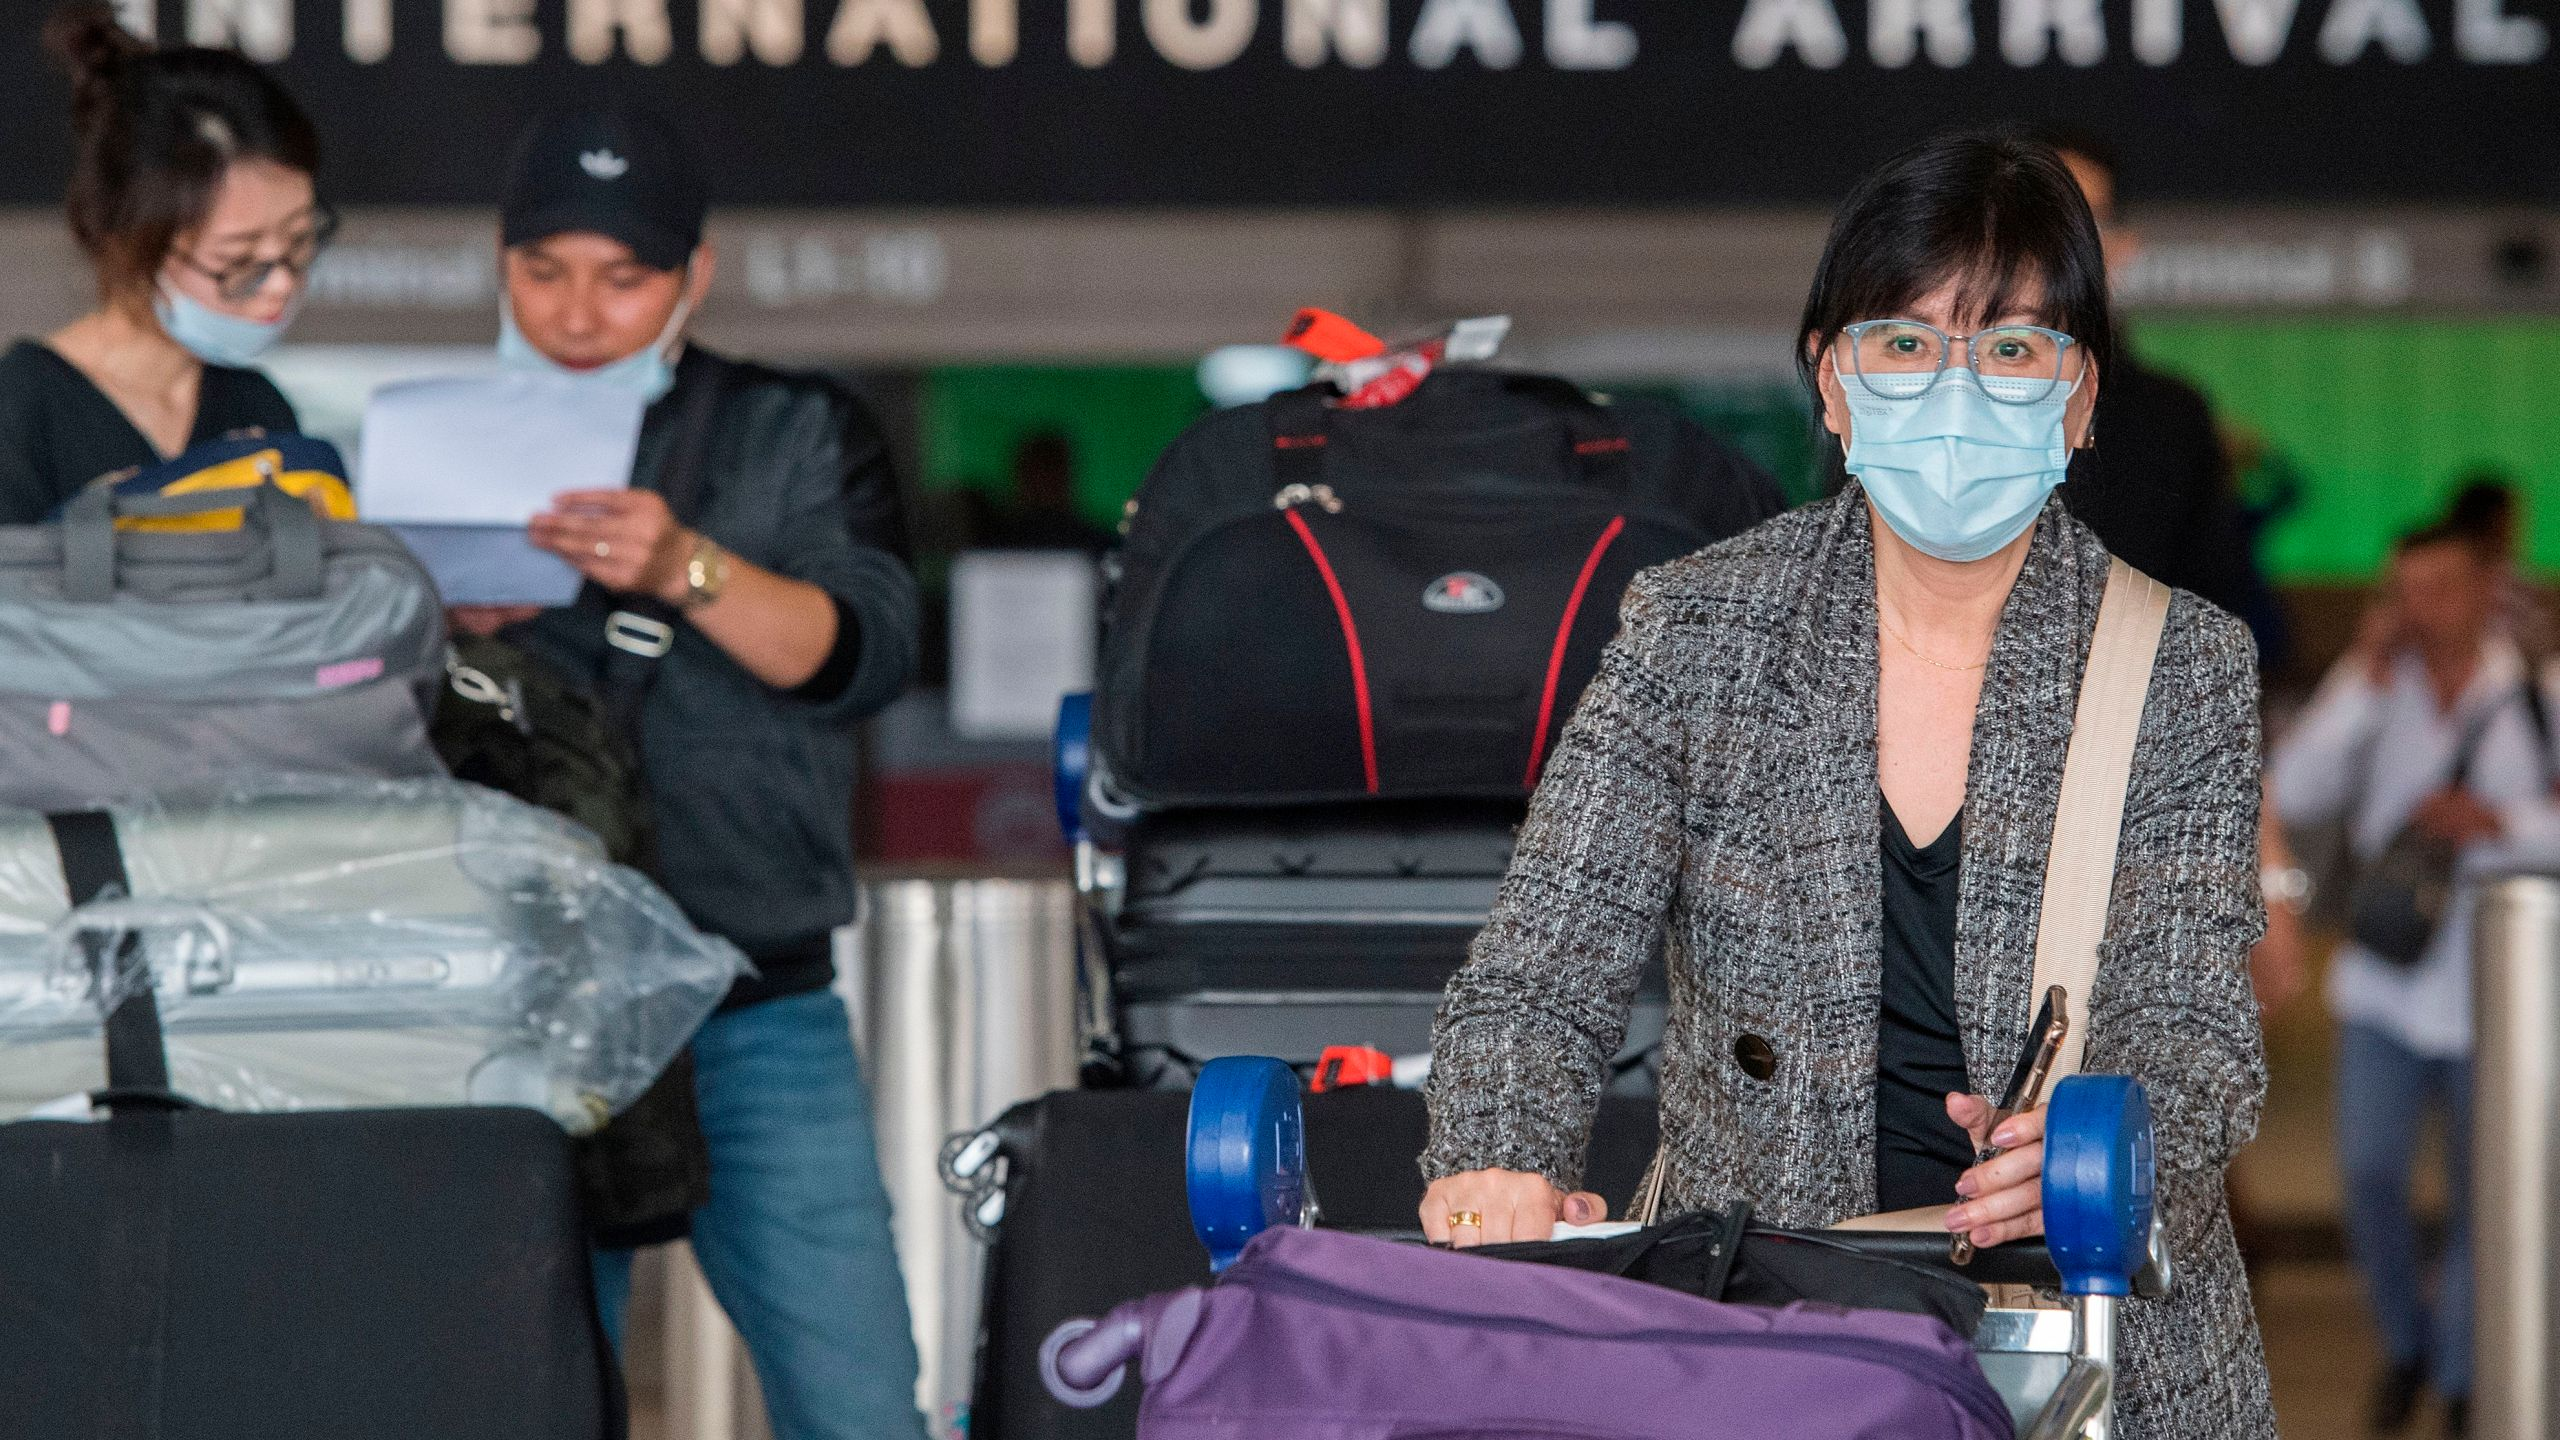 Passengers wear face masks to protect against the spread of the COVID-19, coronavirus, as they arrive at LAX on Feb. 29, 2020. (Mark Ralston/AFP via Getty Images)